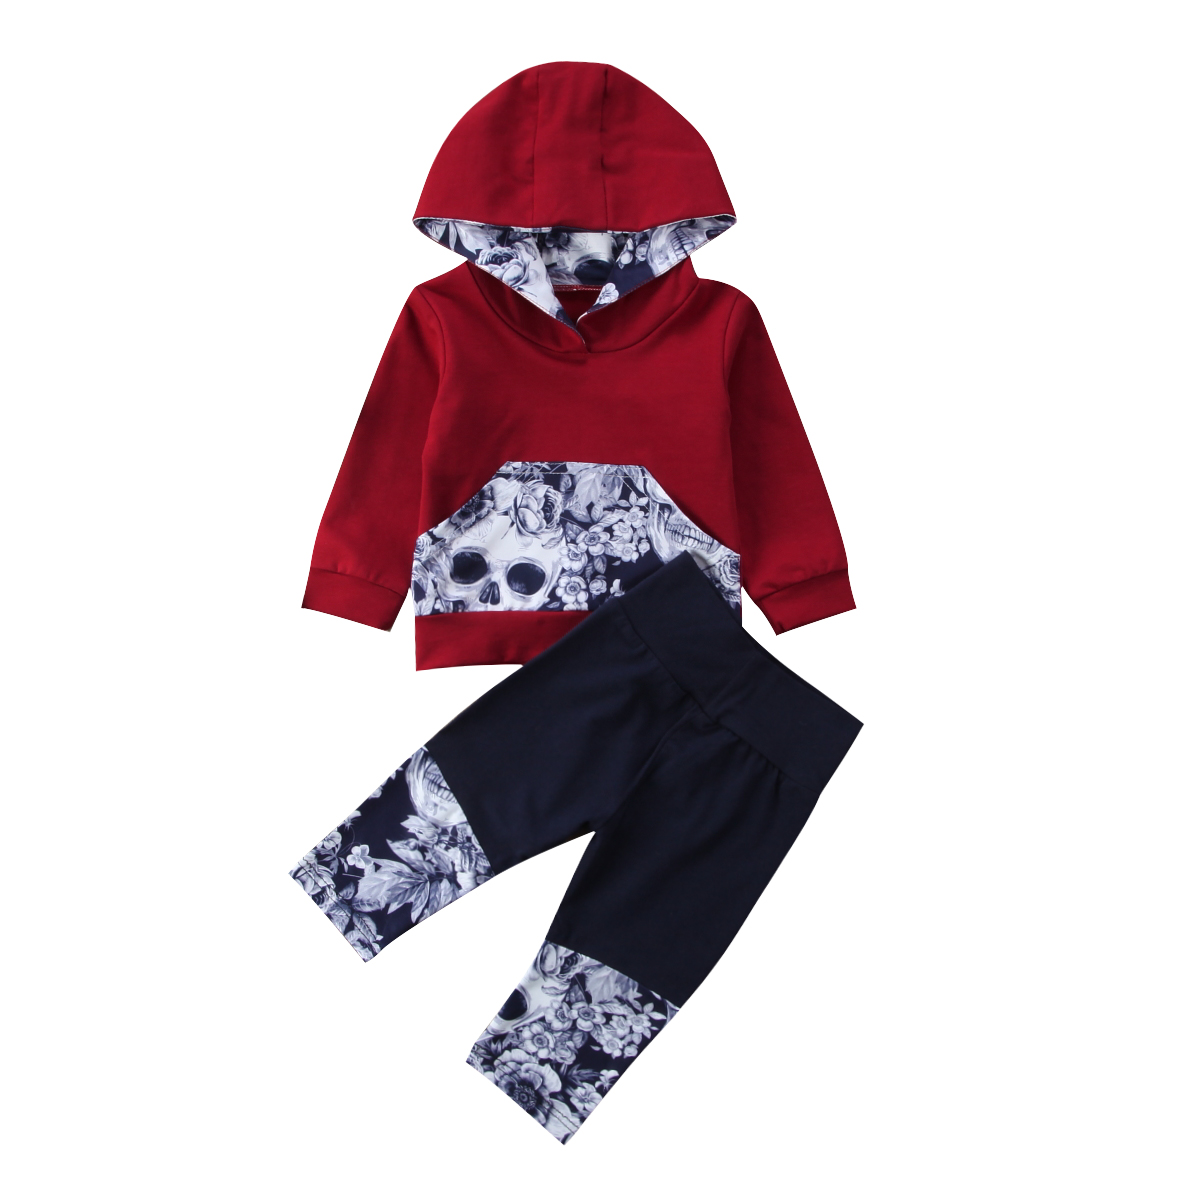 2pcs Newborn Toddler Baby Boys Warm Hooded Top Skulls +Pants Outfits Baby Boy Winter Clothes Home Tracksuit